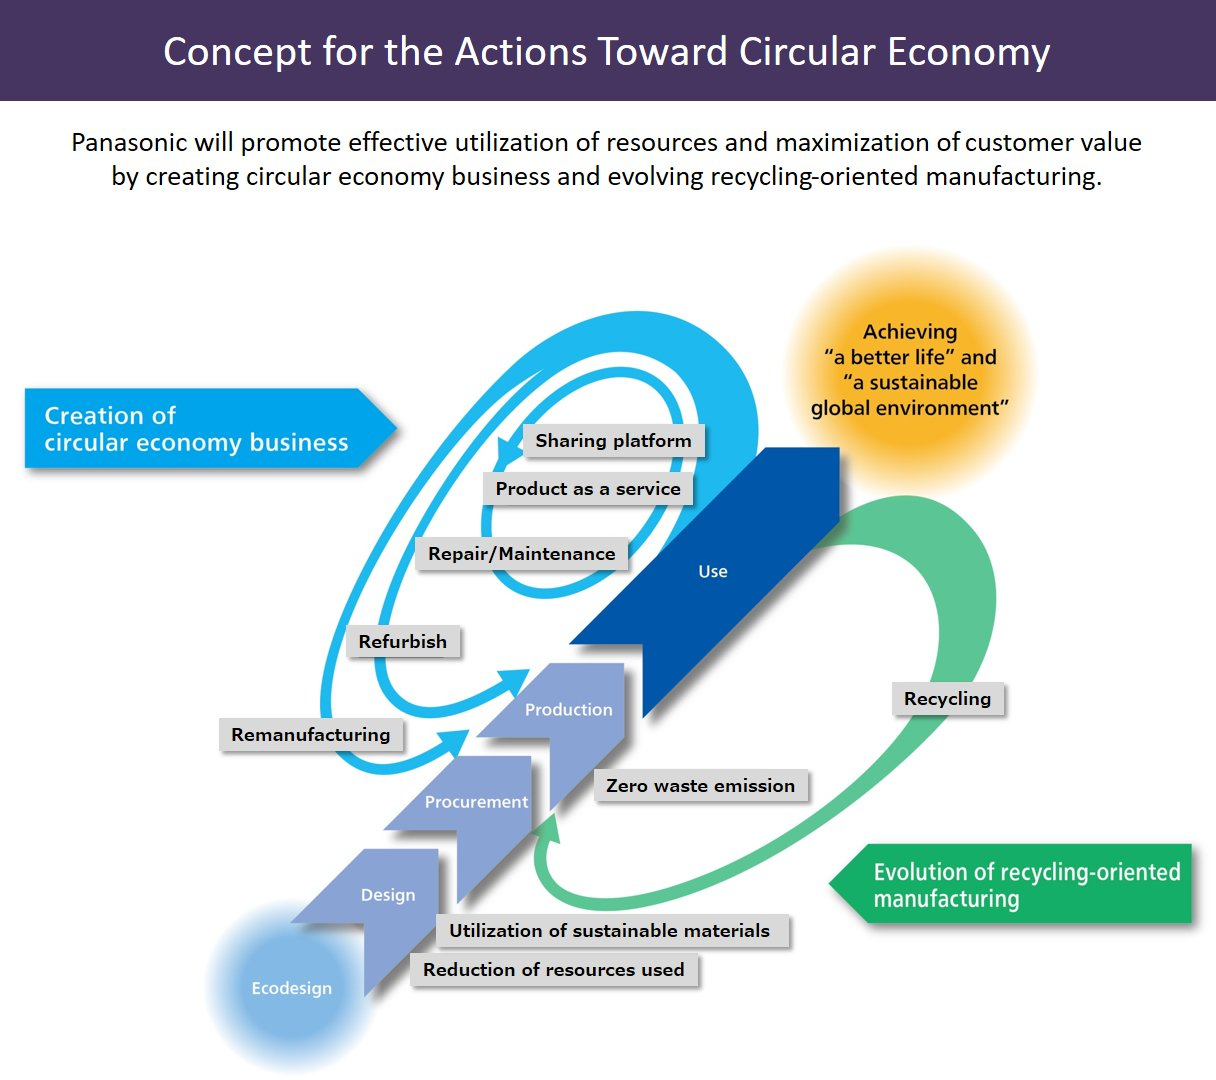 Illustration: Concept for the Actions Toward Circular Economy